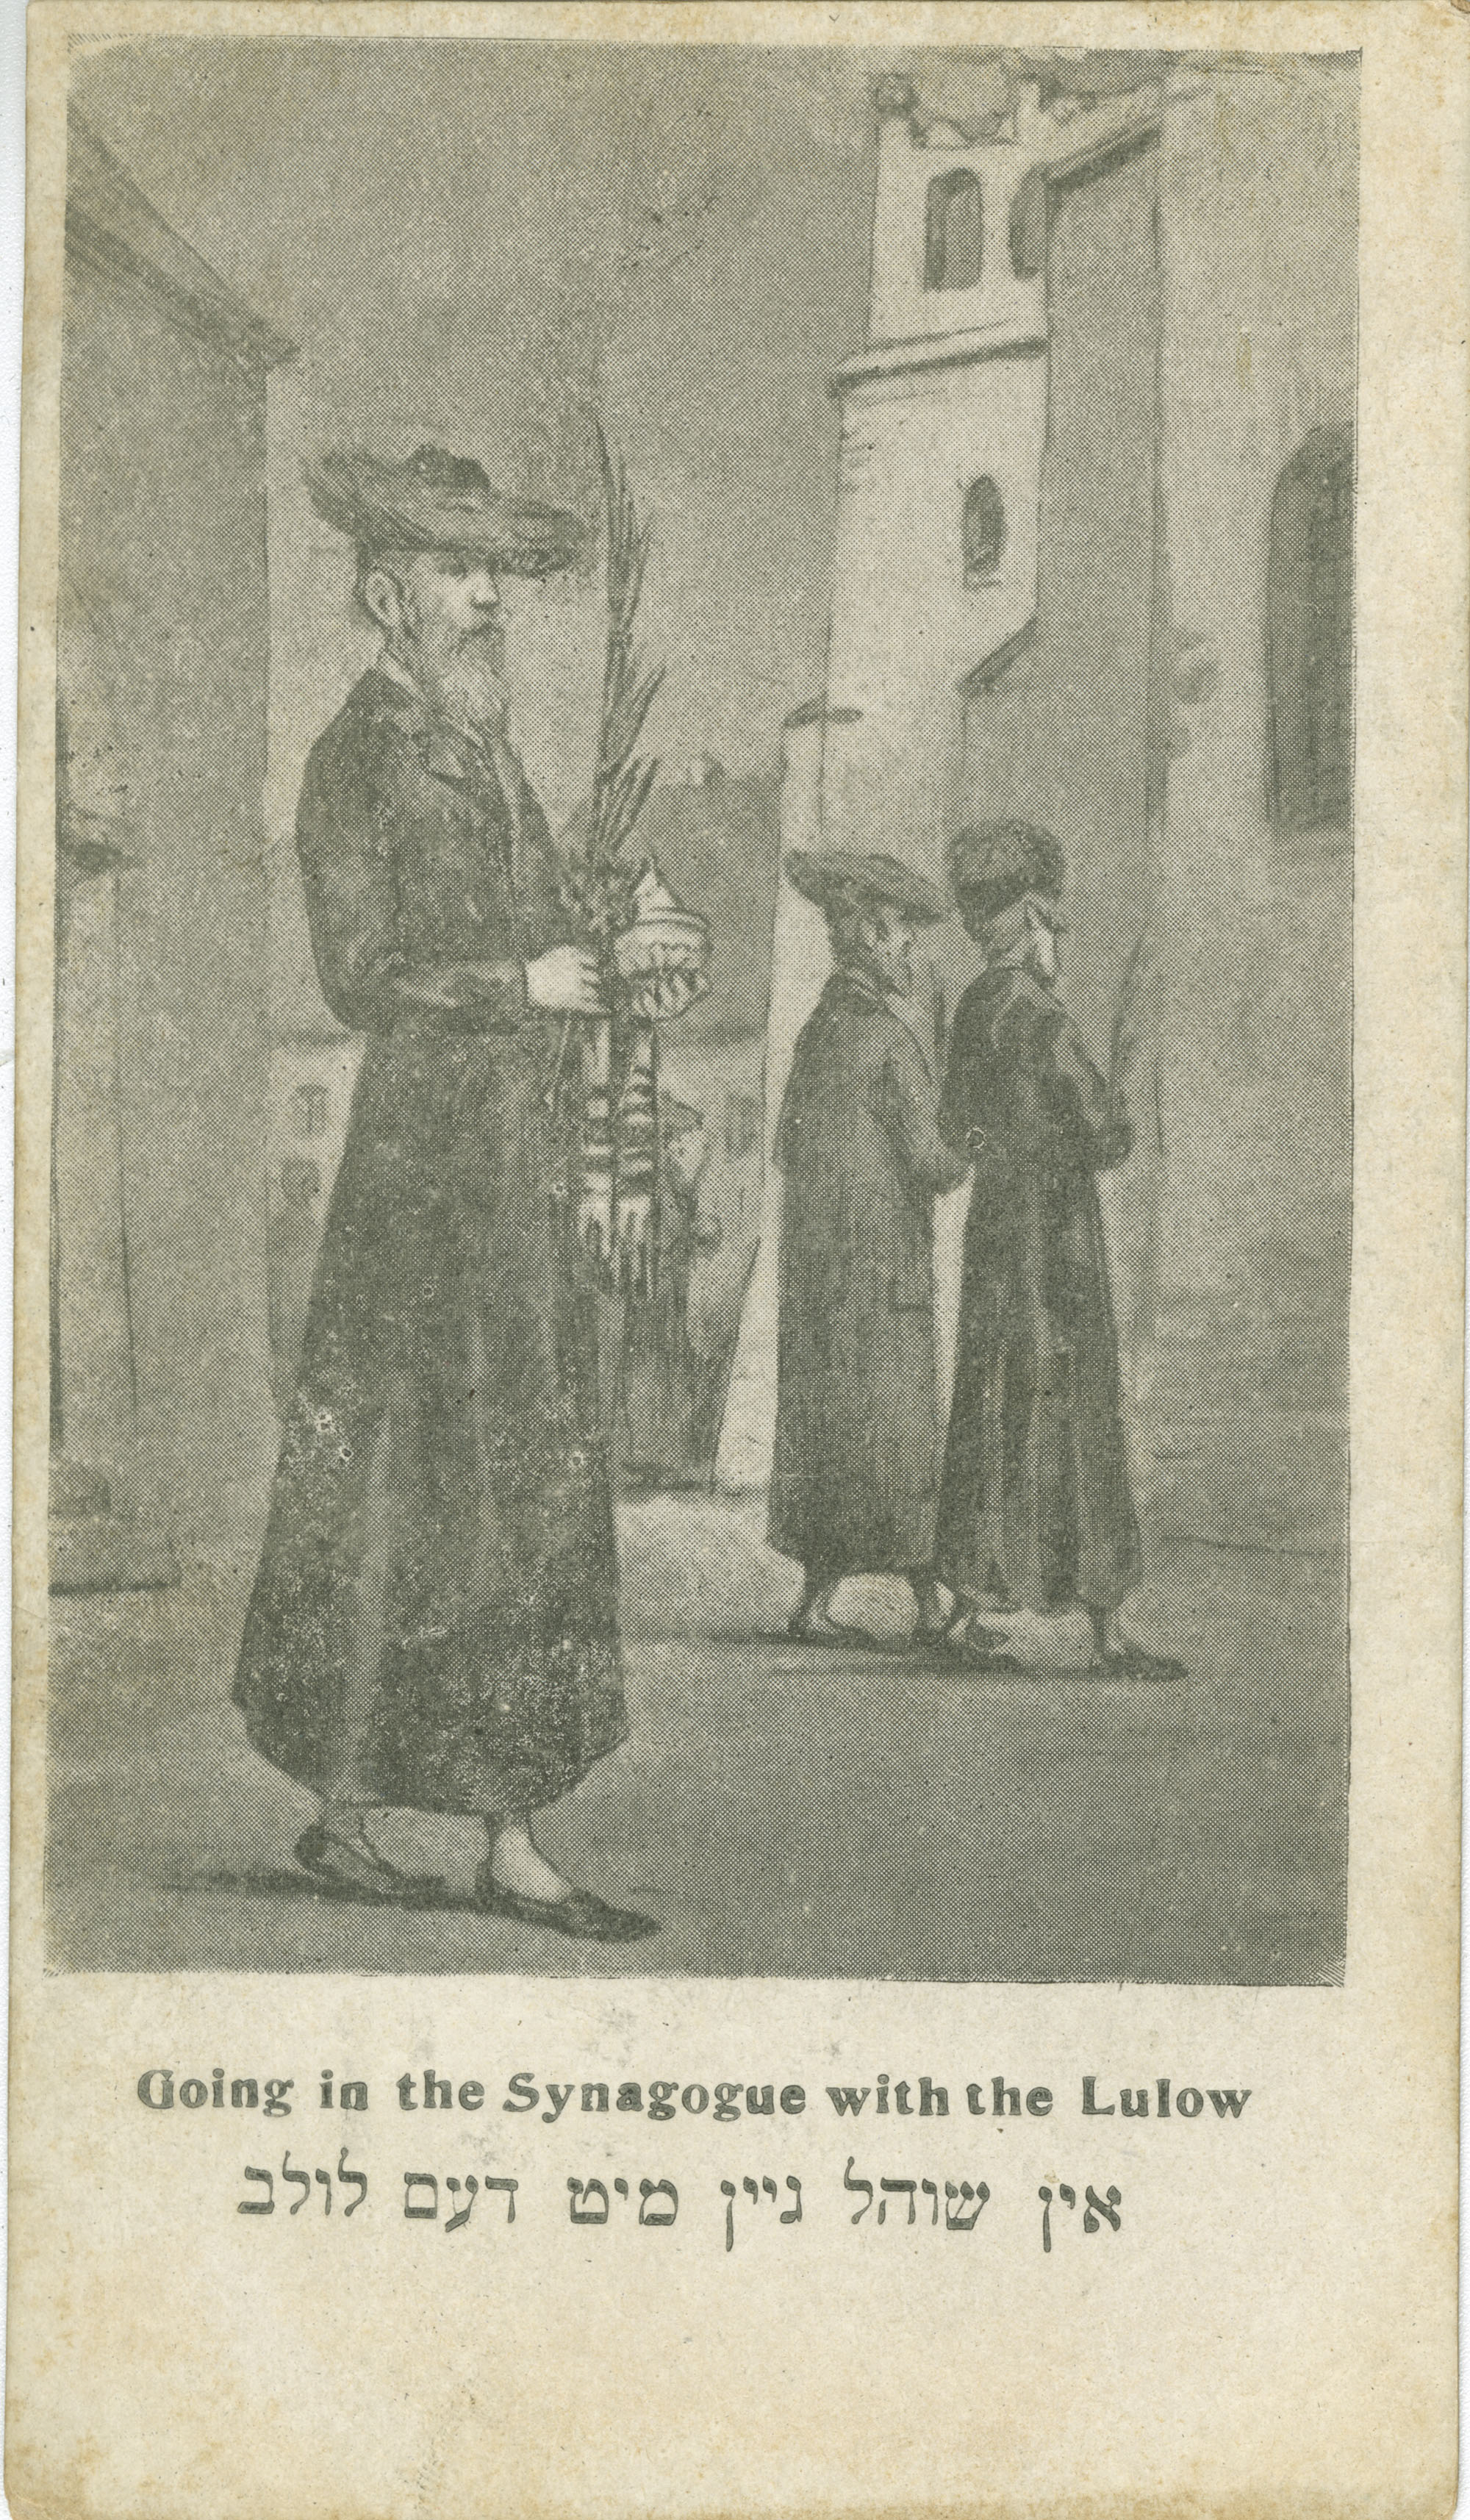 Going in the Synagogue with the Lulow / אין שוהל גיין מיט דעם לולב